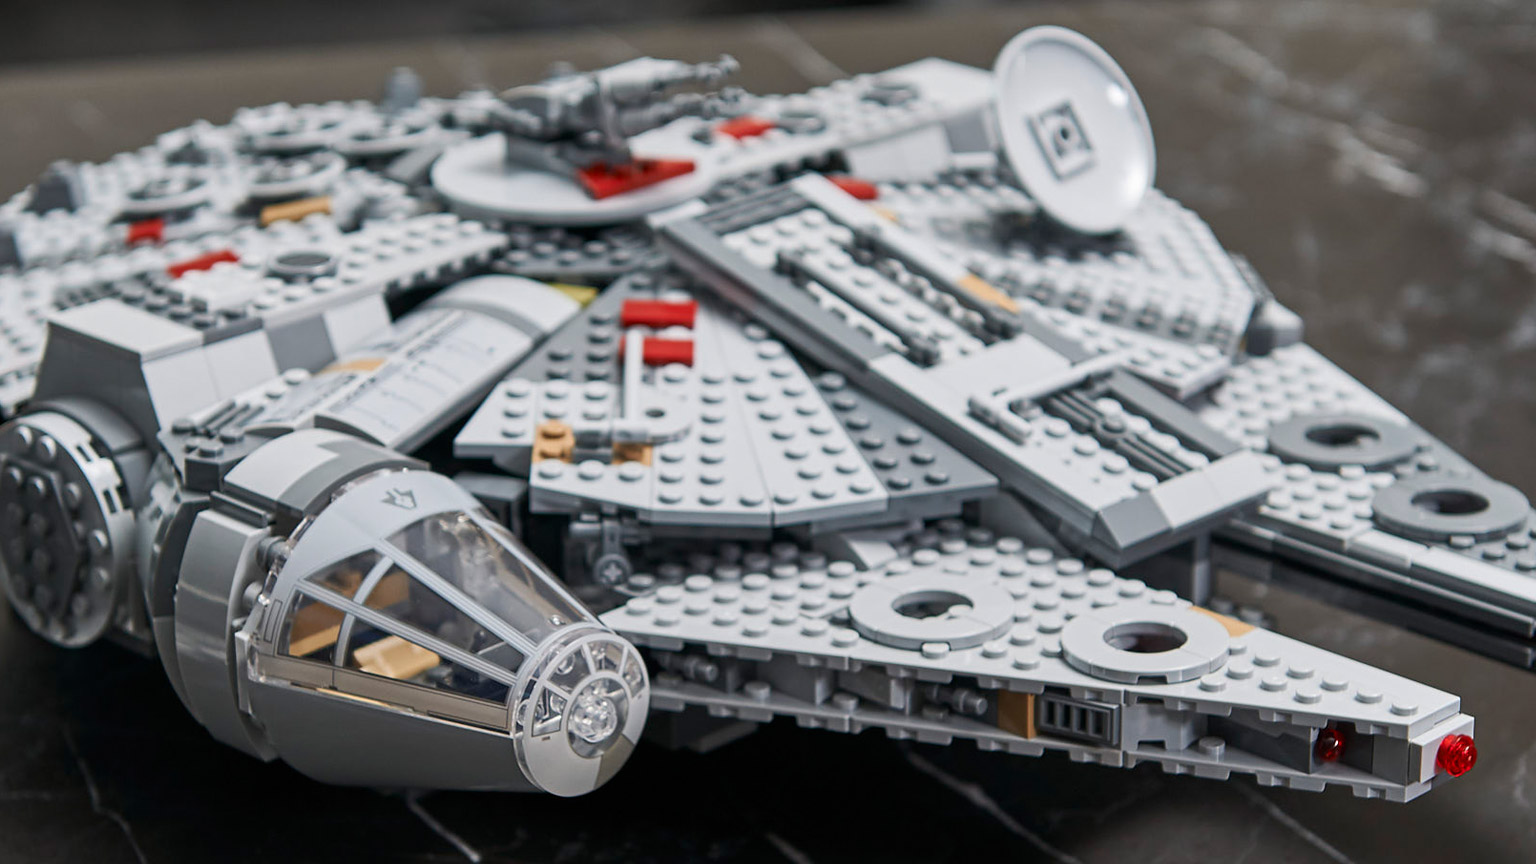 The new LEGO Millennium Falcon from The Rise of Skywalker.